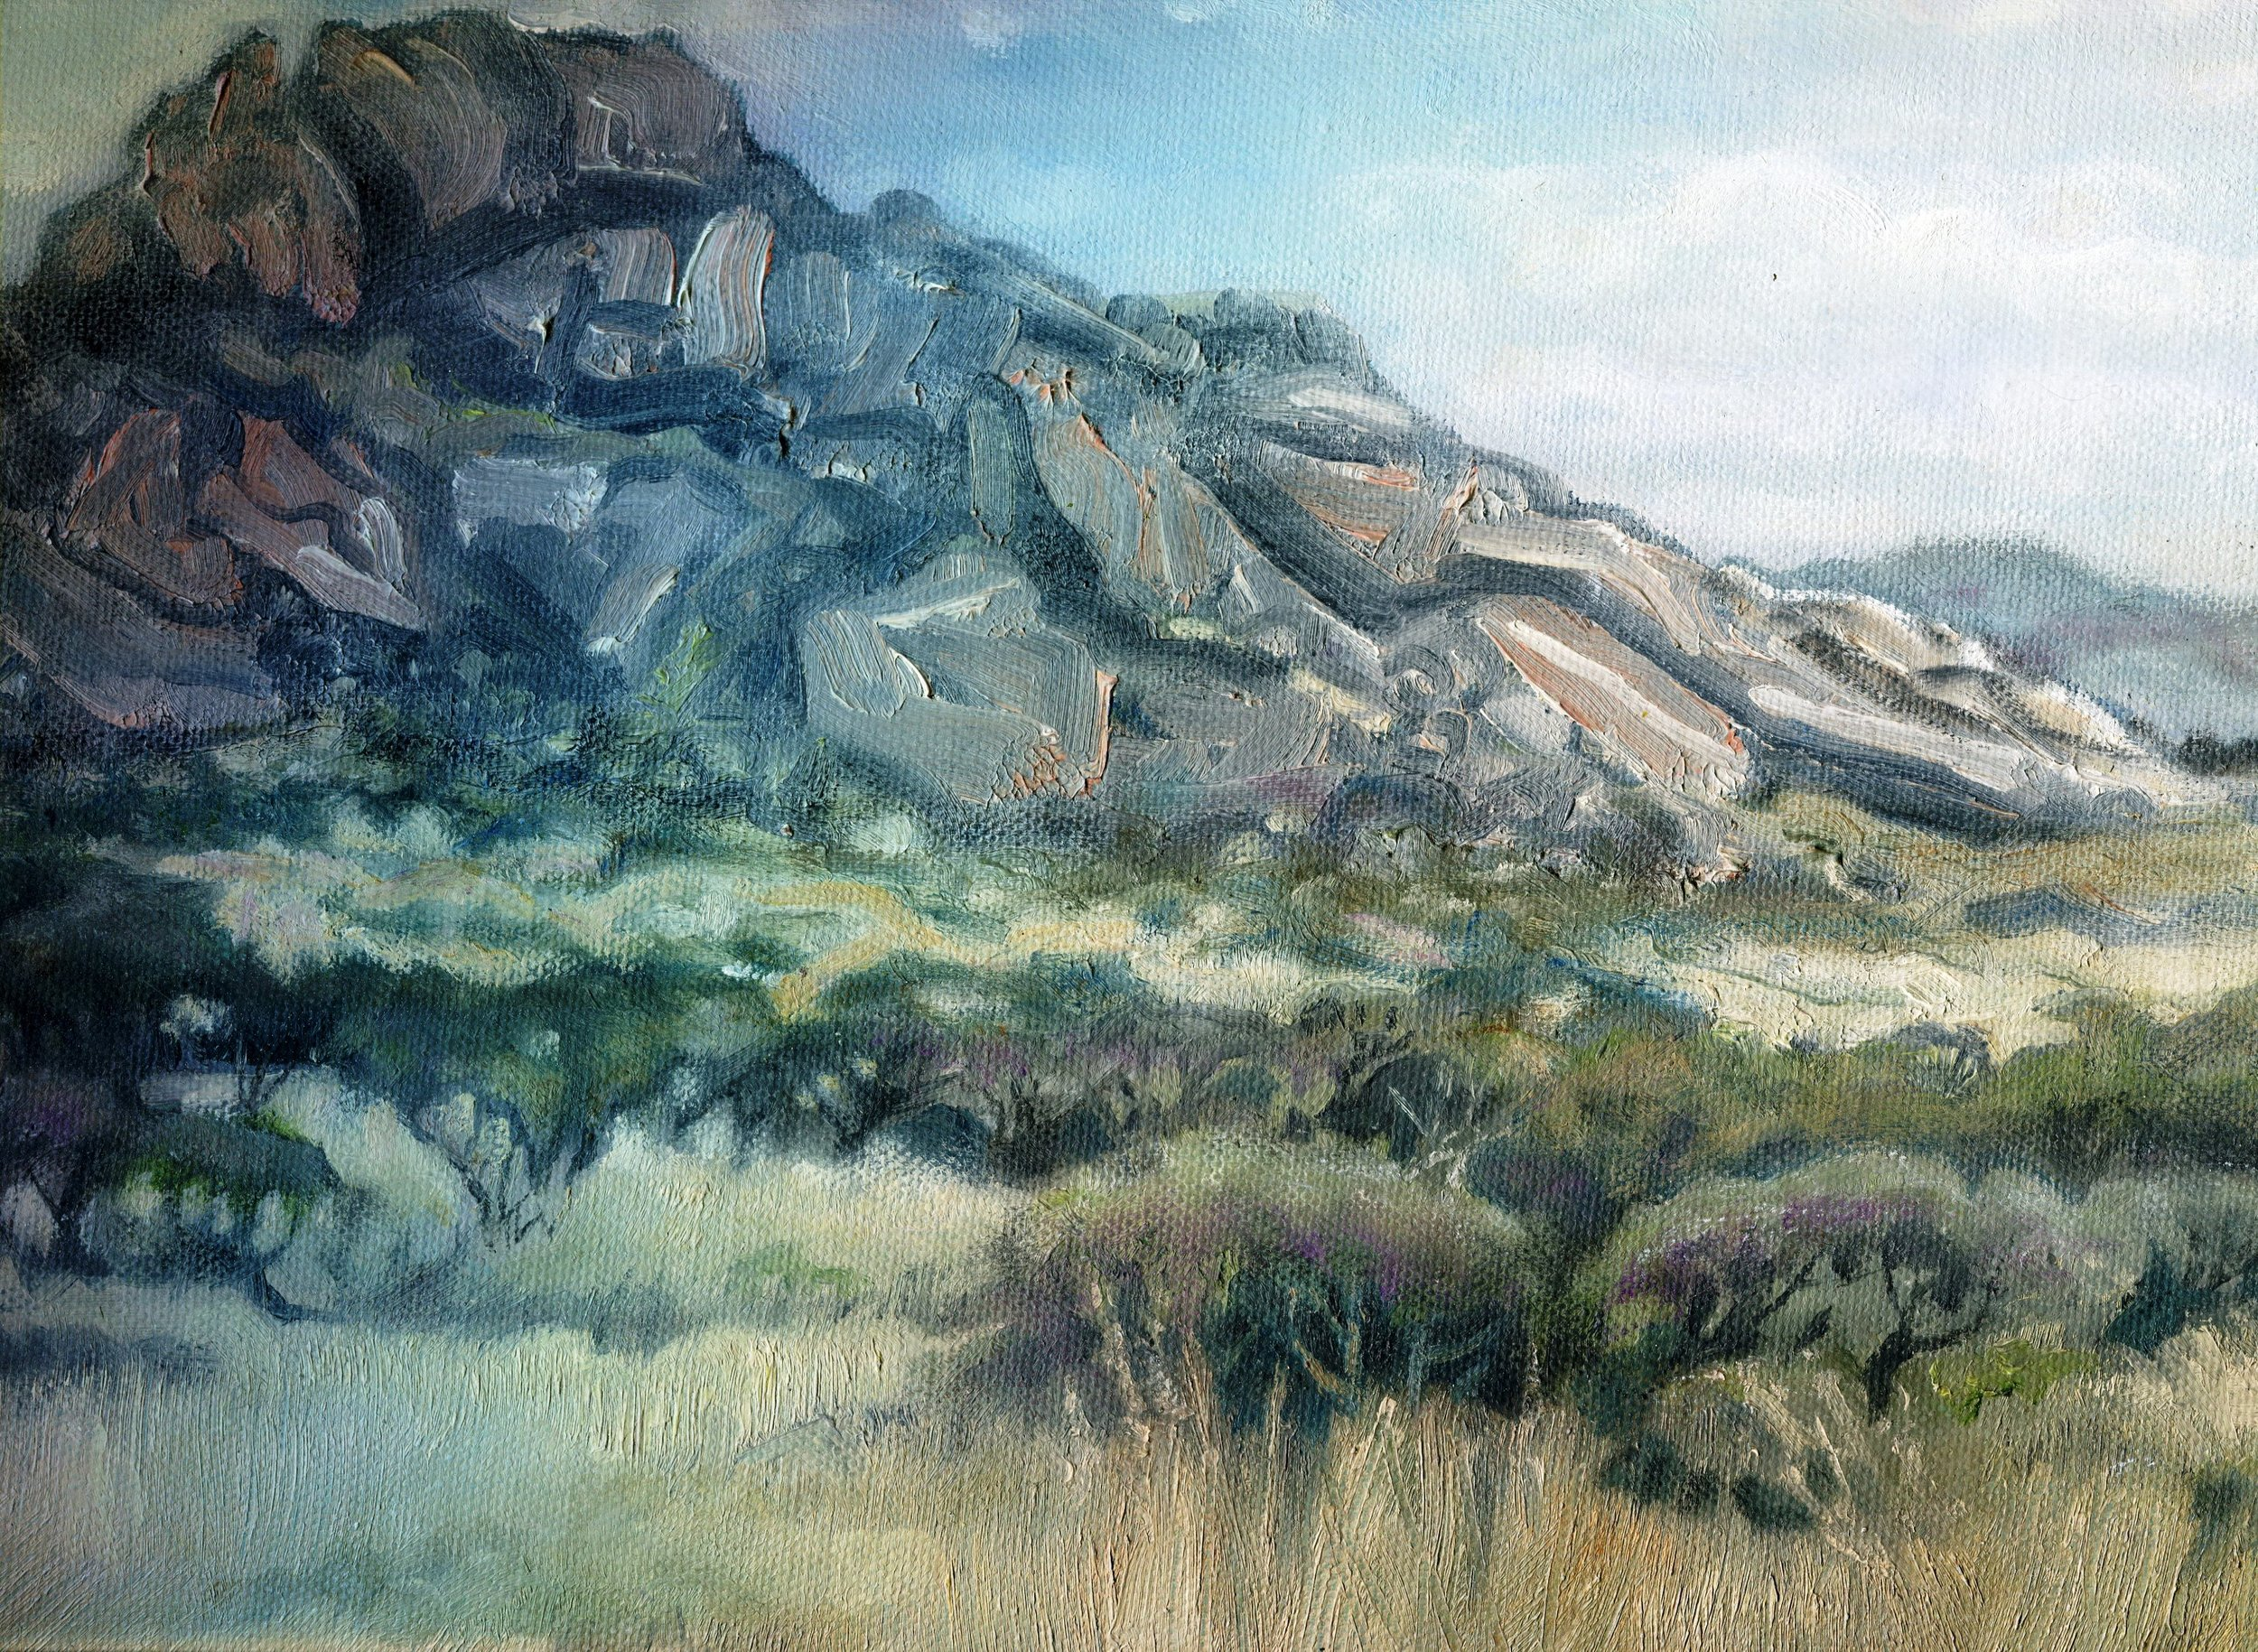 81C JENNY HALLOWES, KAROO KOPPIE, OIL ON CANVAS